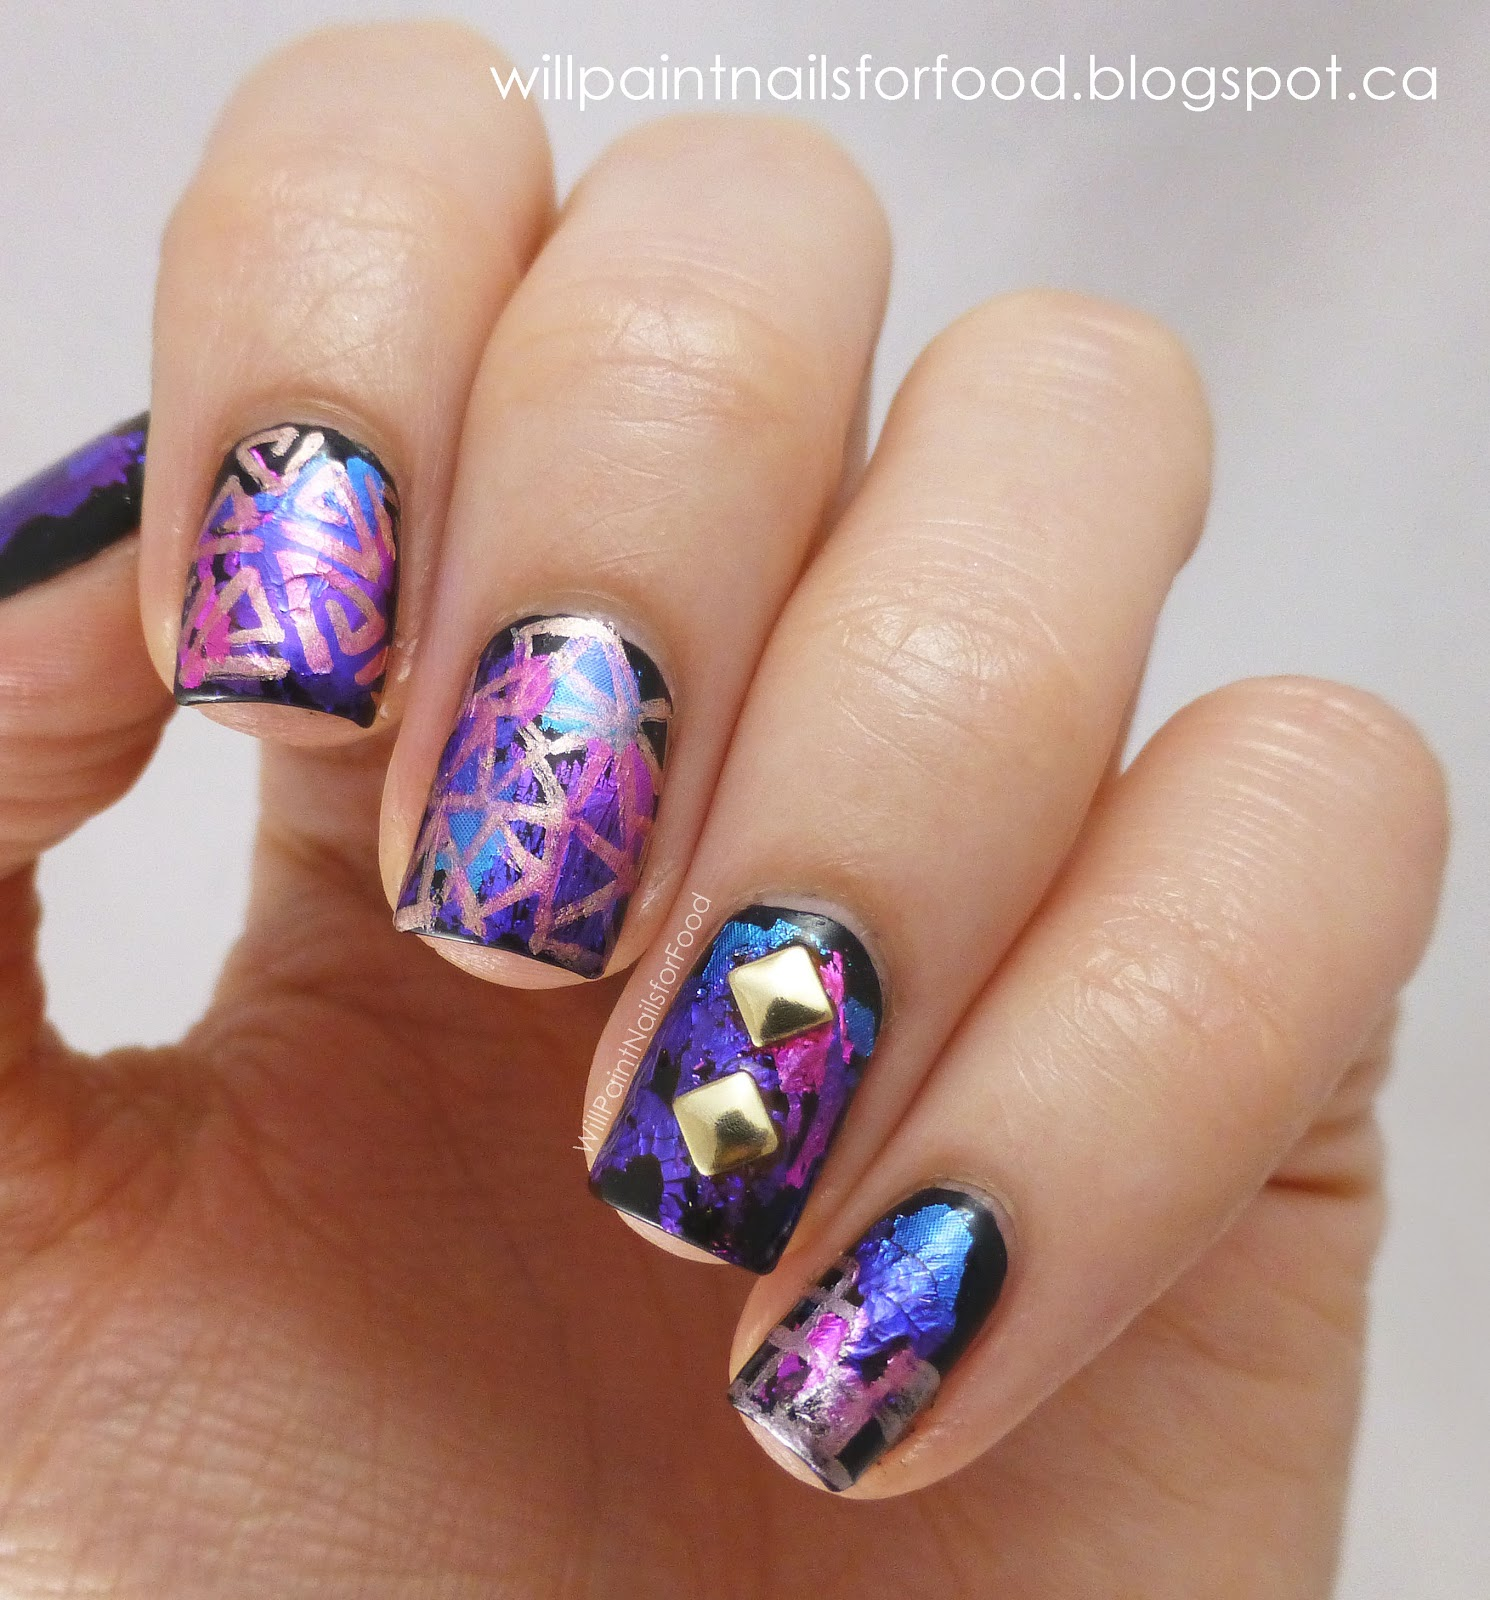 Will paint nails for food seven deadly sins challenge day 6 greed and a born pretty store - Foil nail art ...